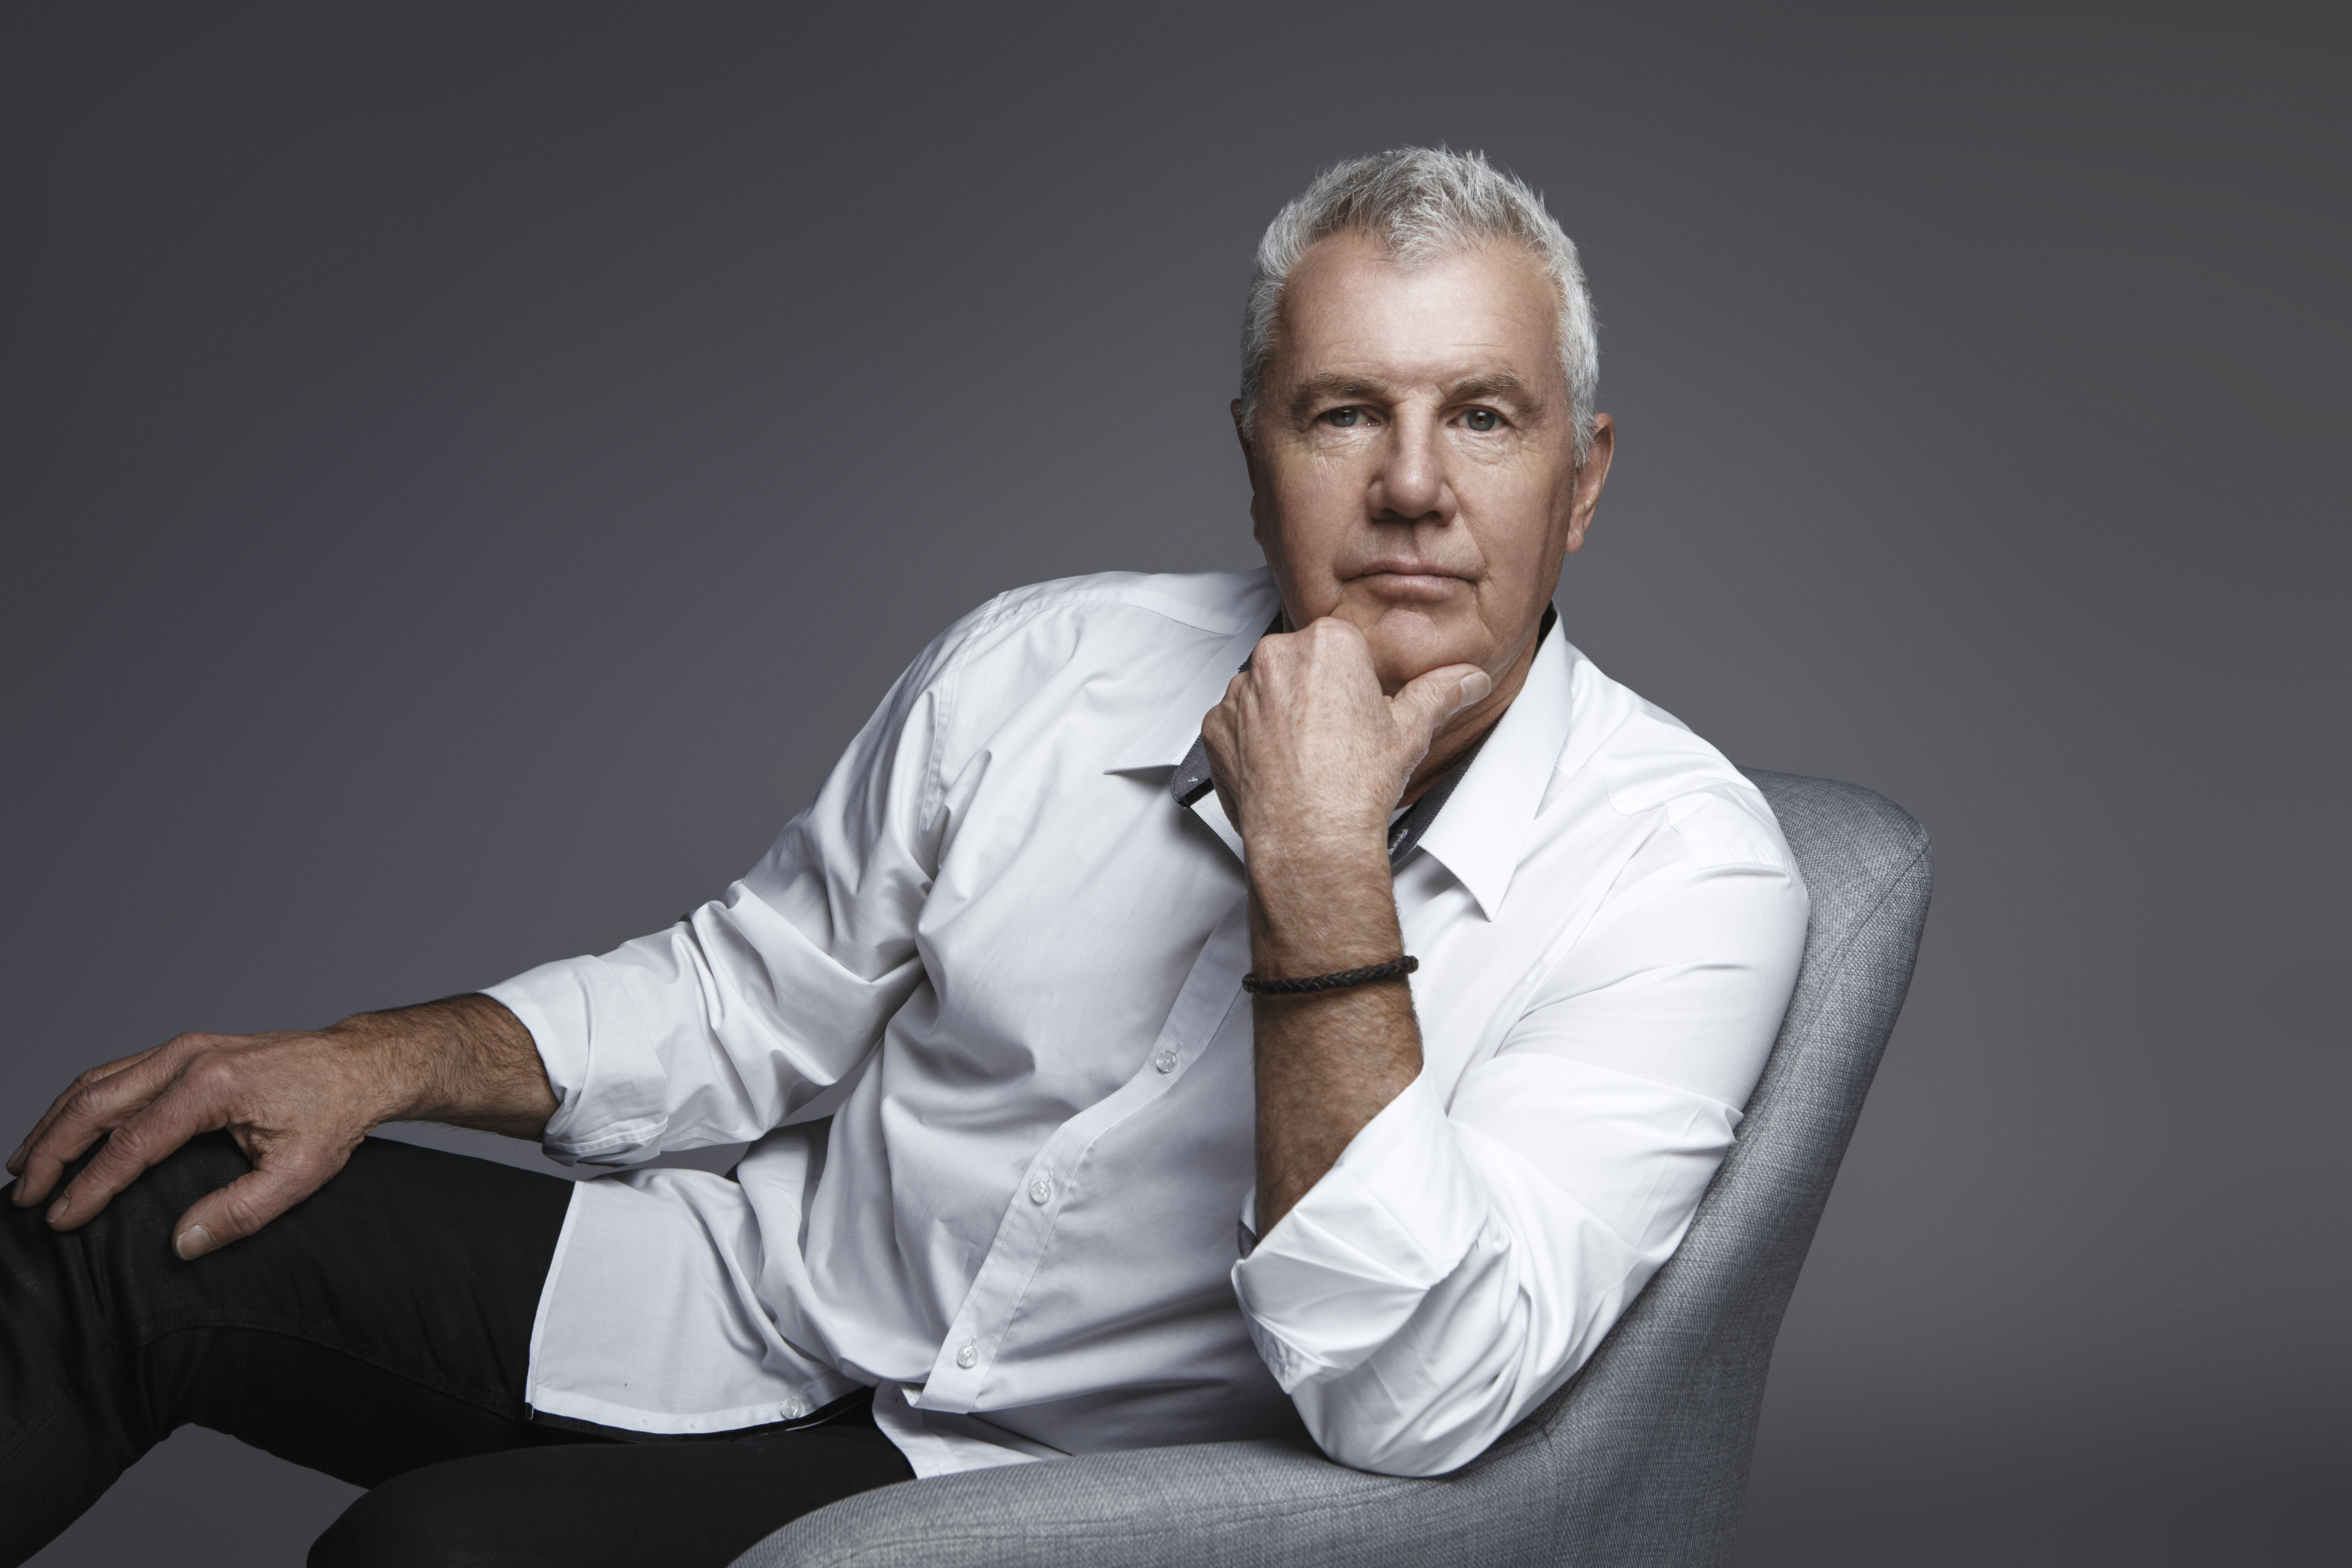 Daryl Braithwaite releases Greatest Hits album 'Days Go By'